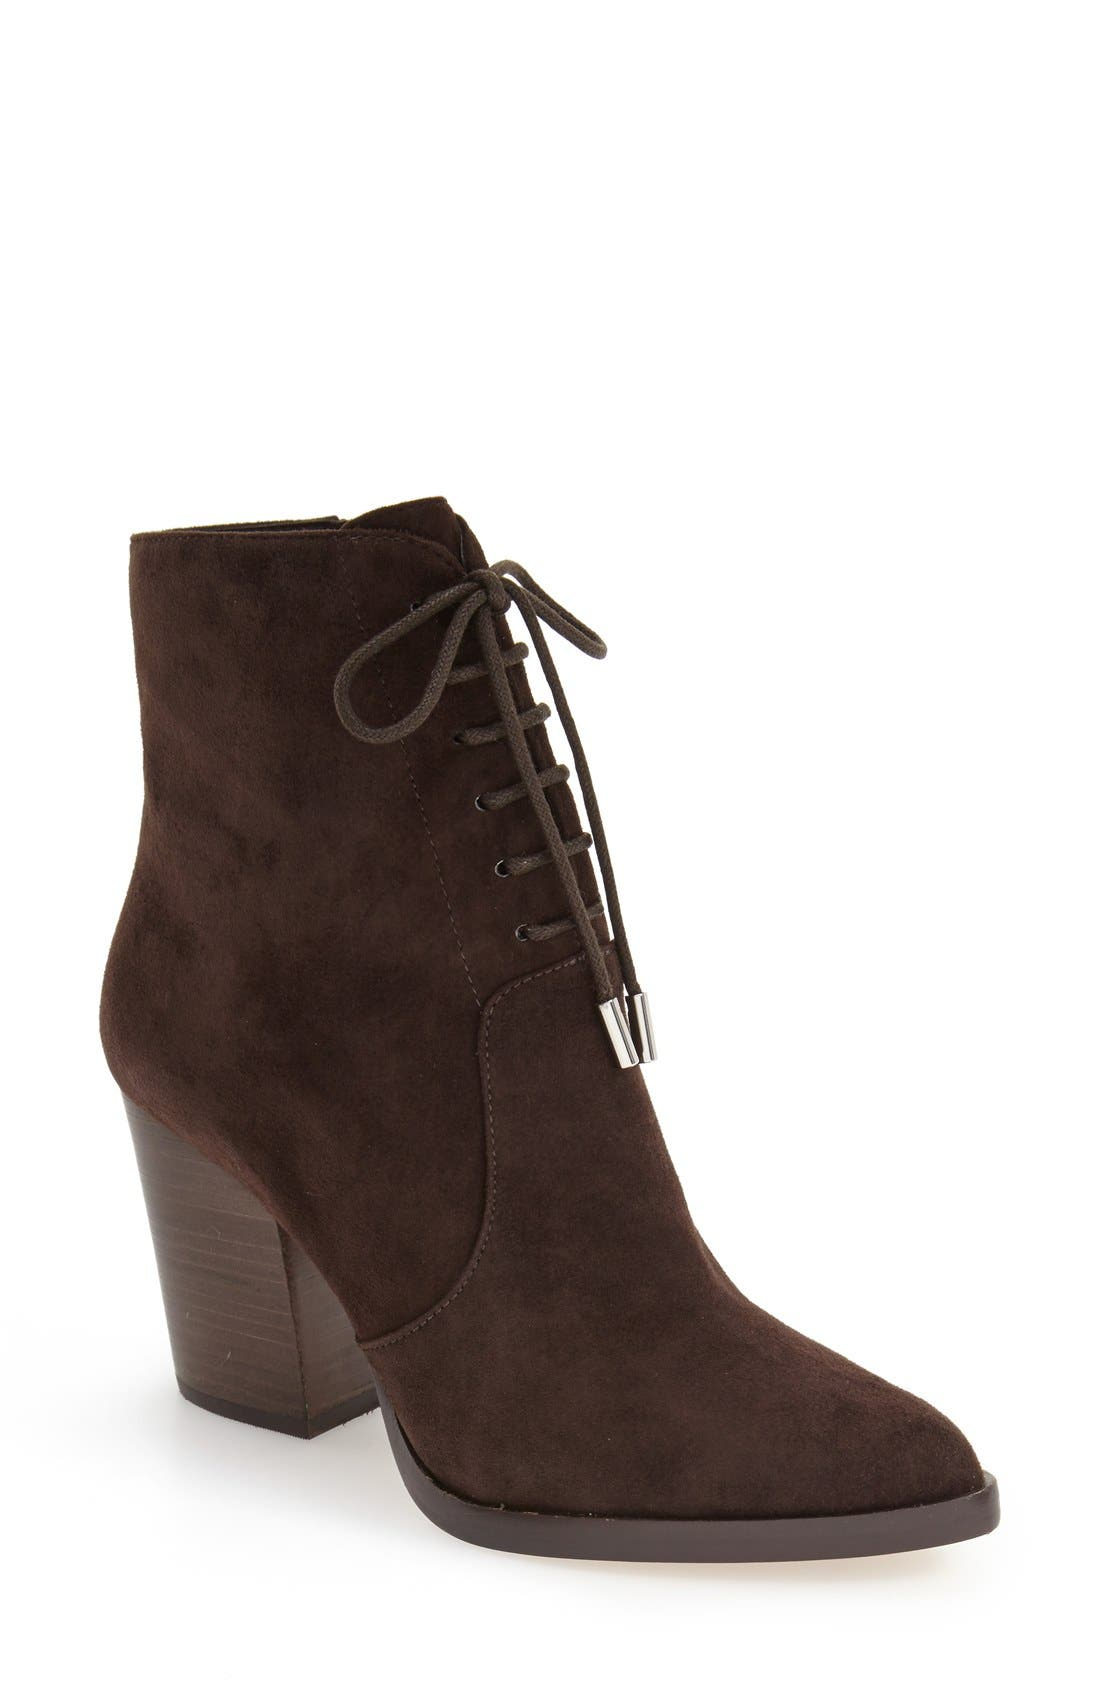 Alternate Image 1 Selected - Marc Fisher LTD Aaliyah Pointy Toe Lace-Up Bootie (Women)